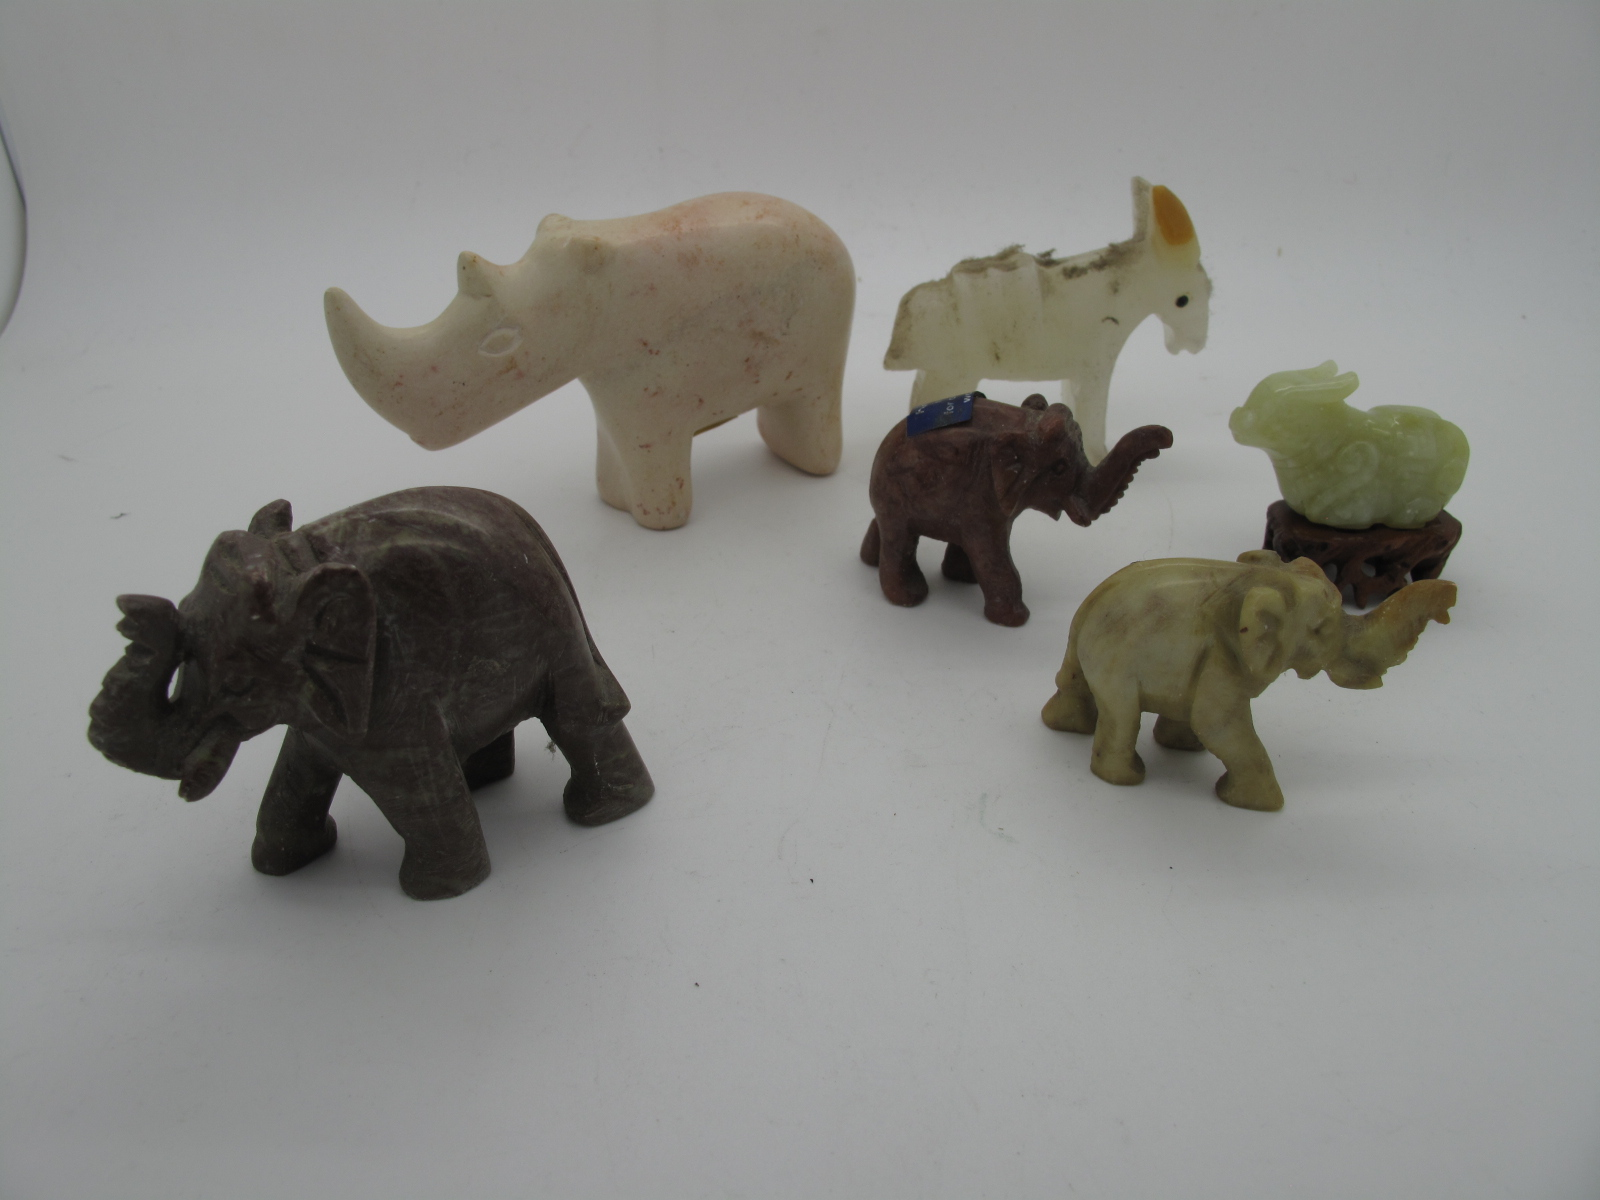 A Carved Mineral Figures of Animals, Chinese style glass figure of a bearded sage, etc:- One Tray - Image 2 of 6